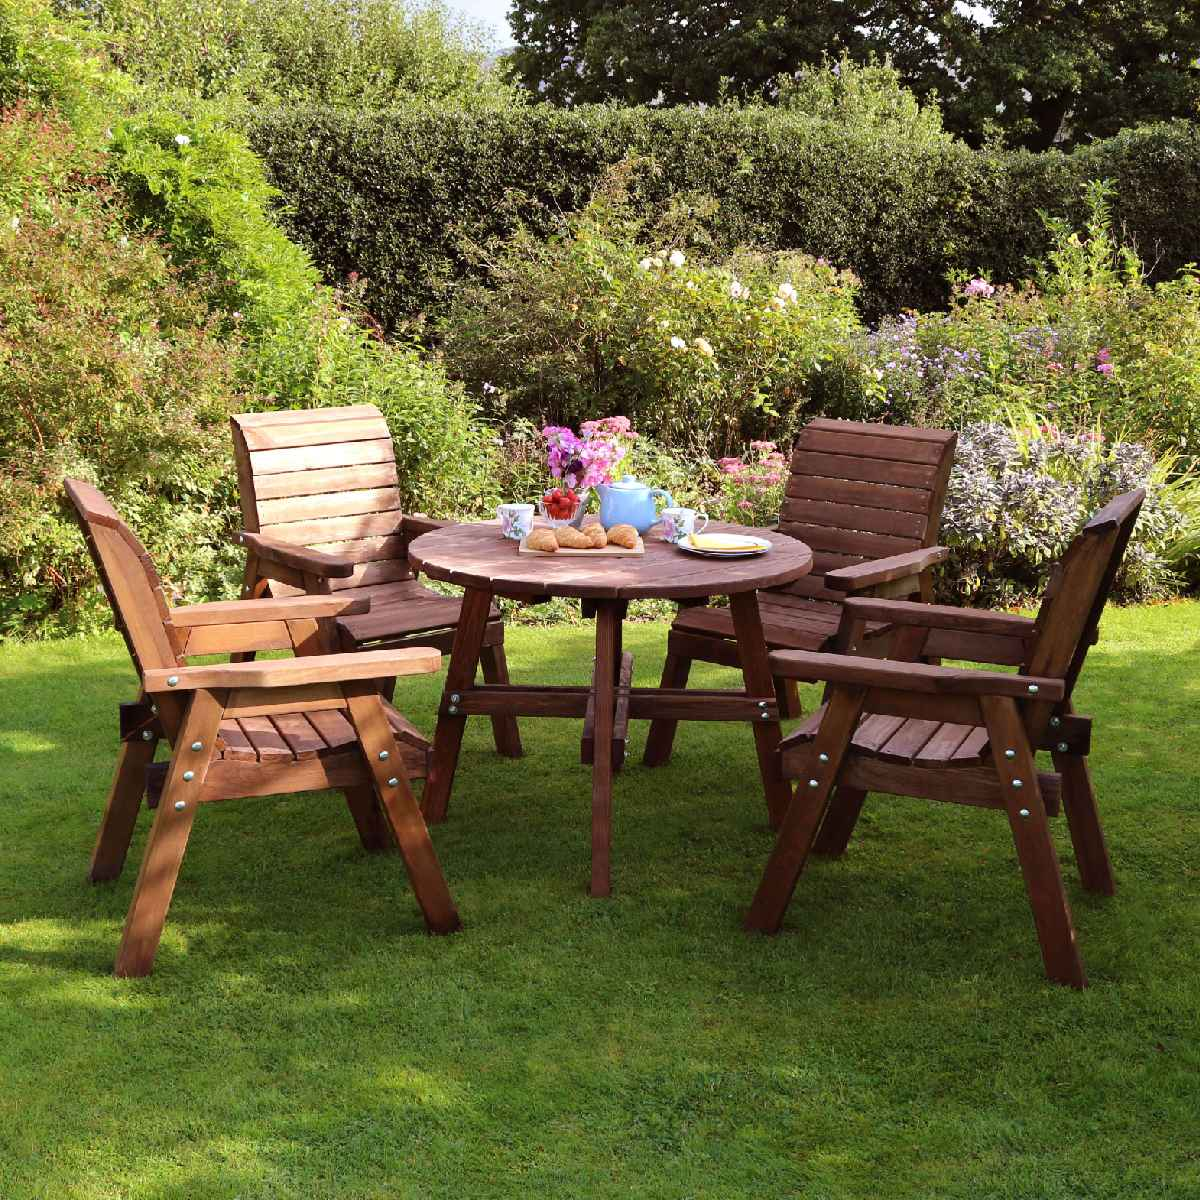 Zest4Leisure Charlotte Round Table and 4 Chair Dining Set